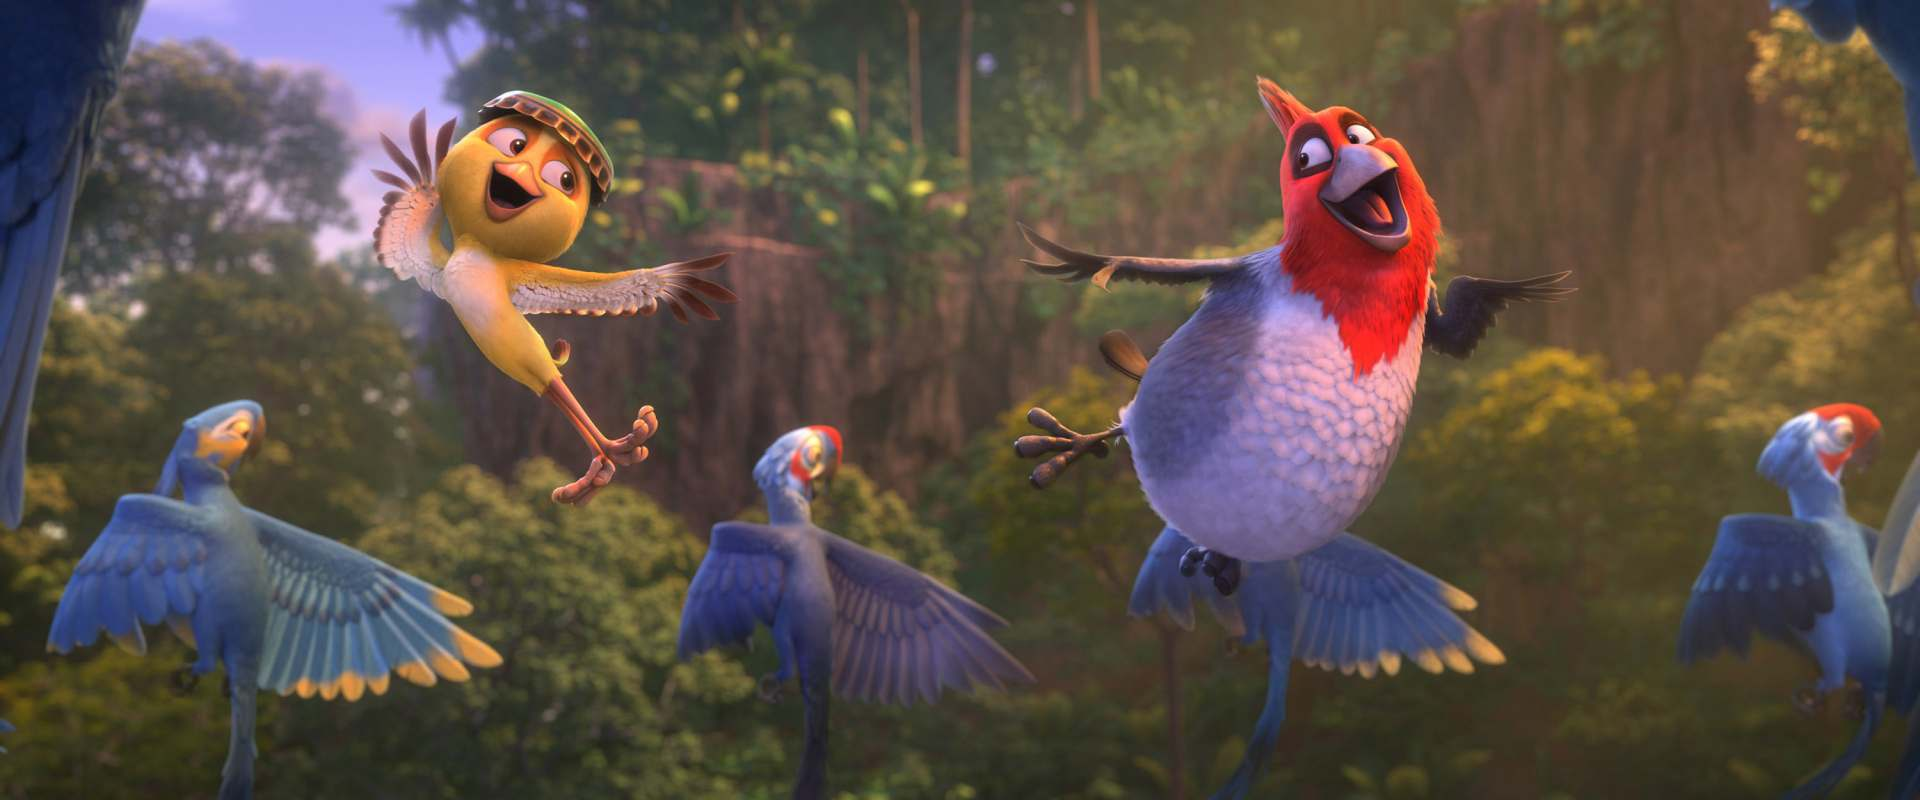 Rio 2 Characters Background Collection 8 Wallpapers